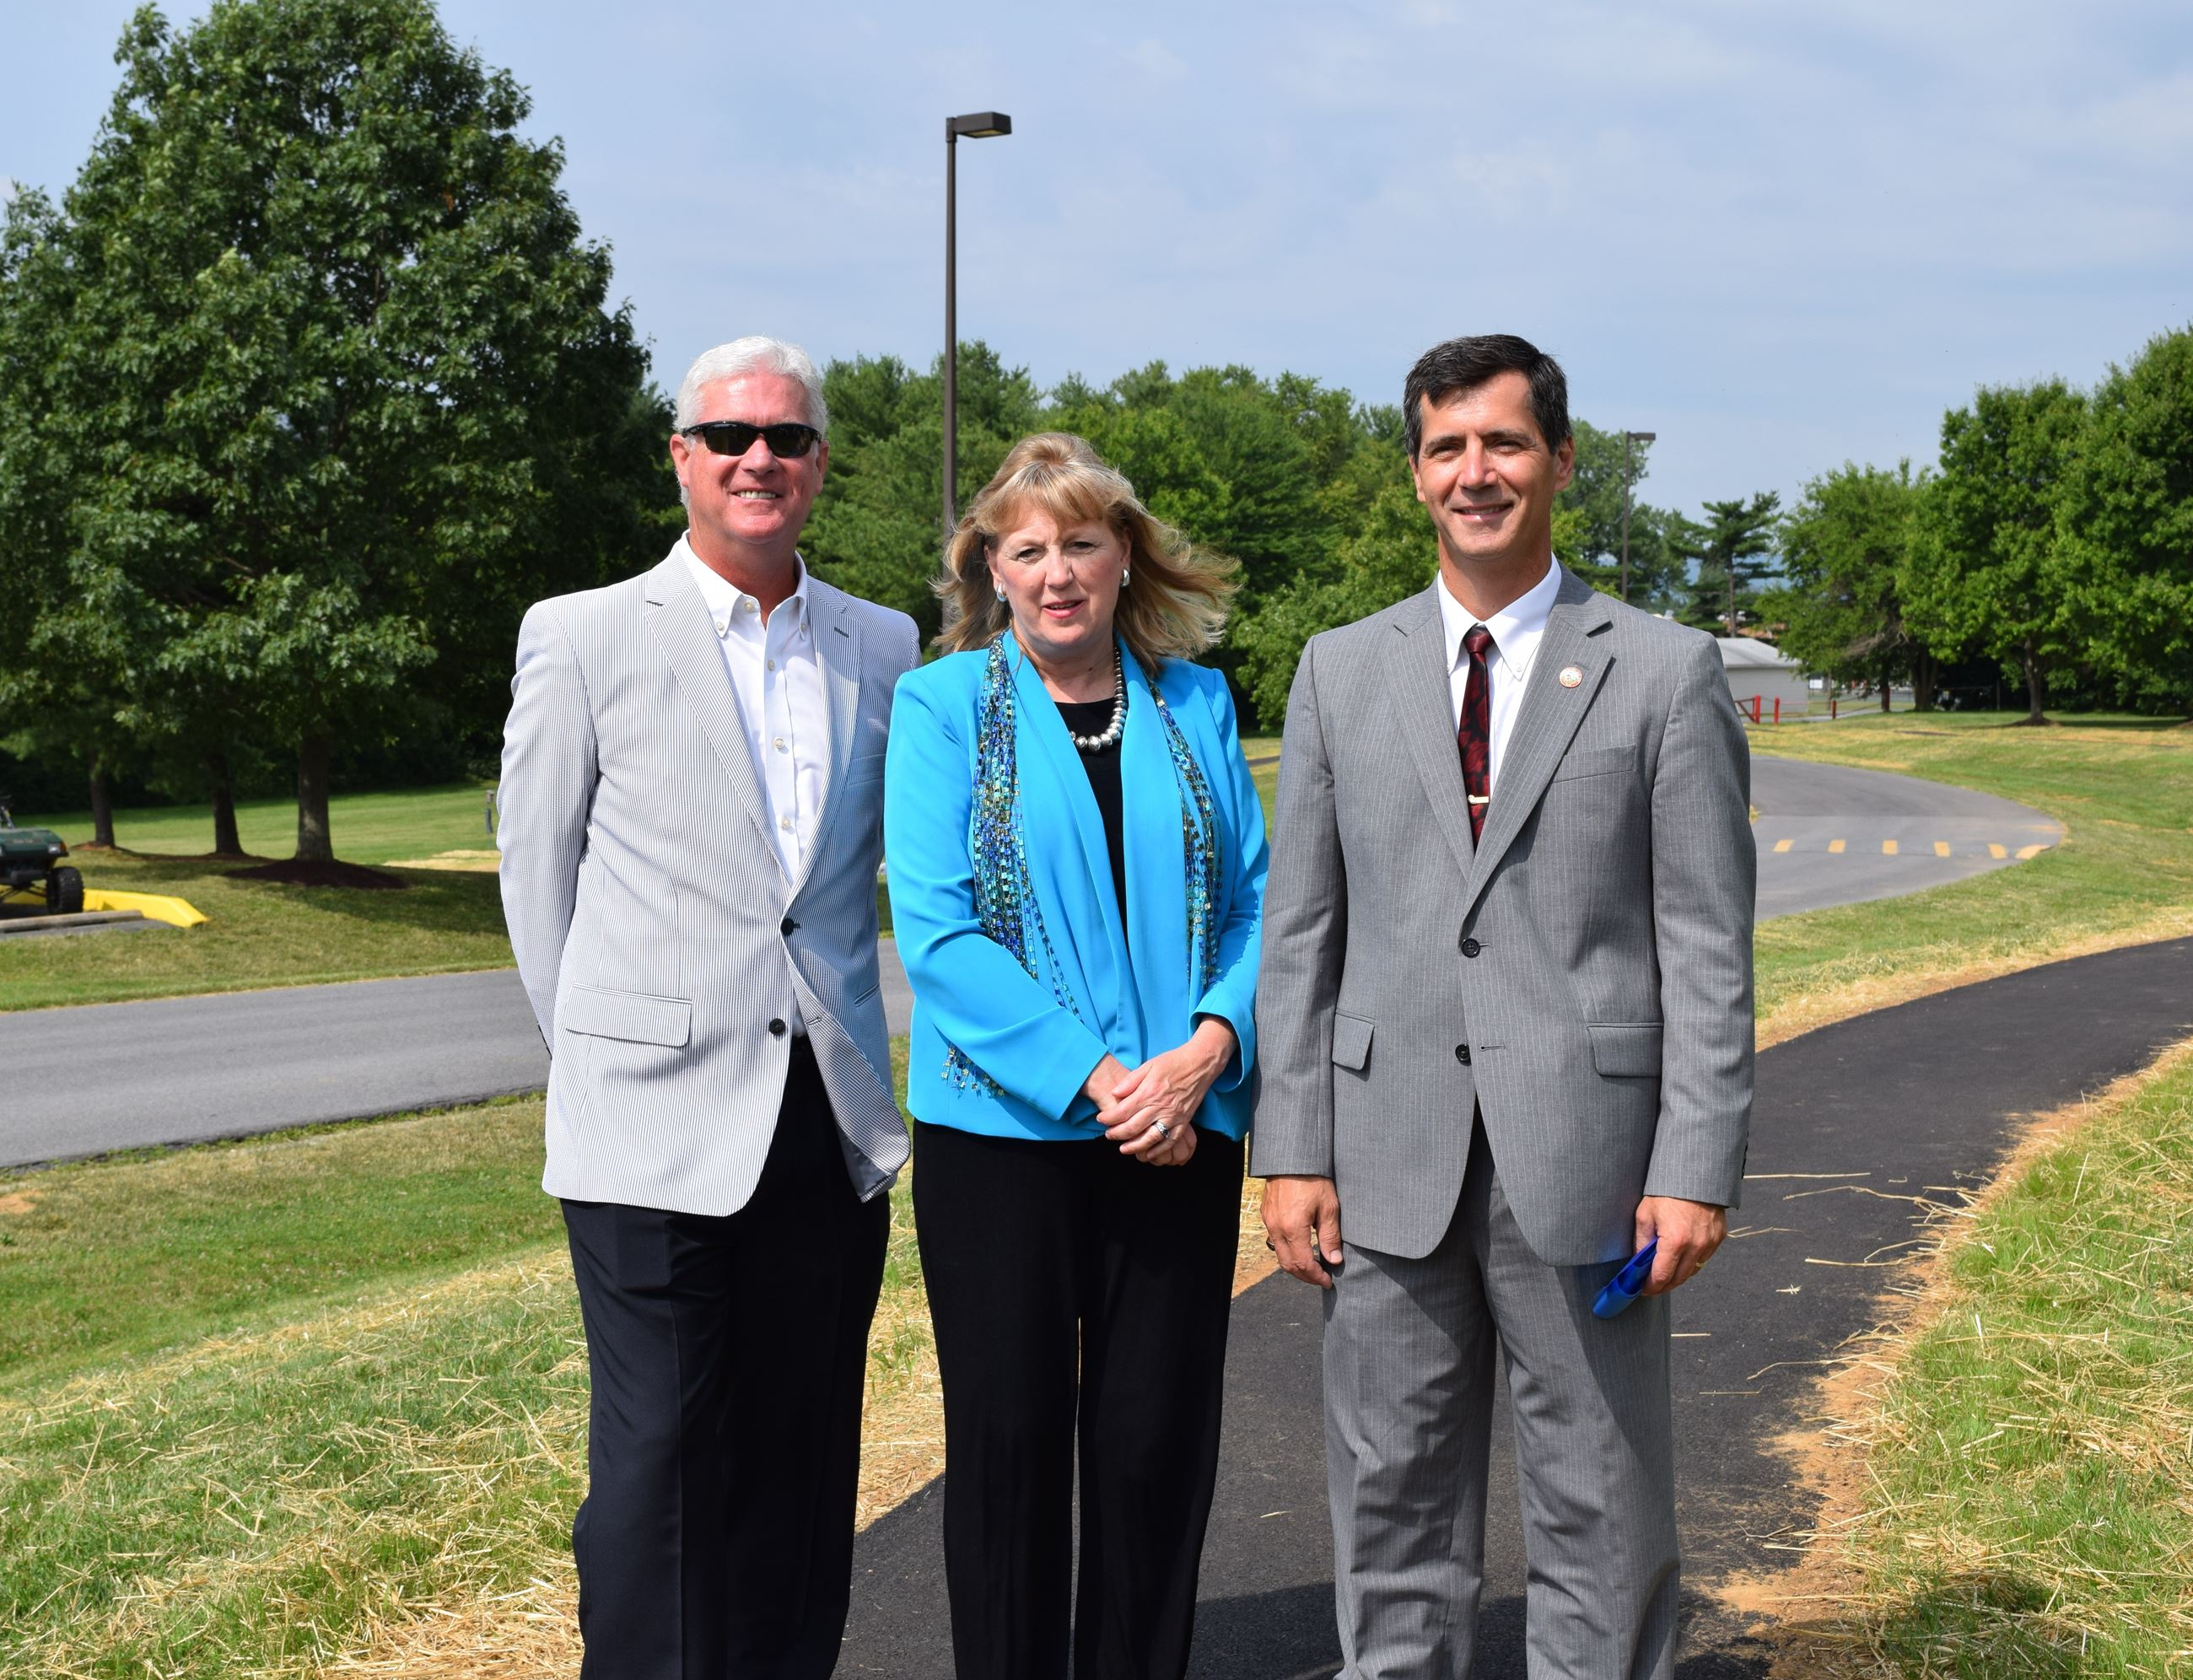 Burgess of Middletown, John Miller, County Executive, Jan Gardner, Council Member, Jerry Donald